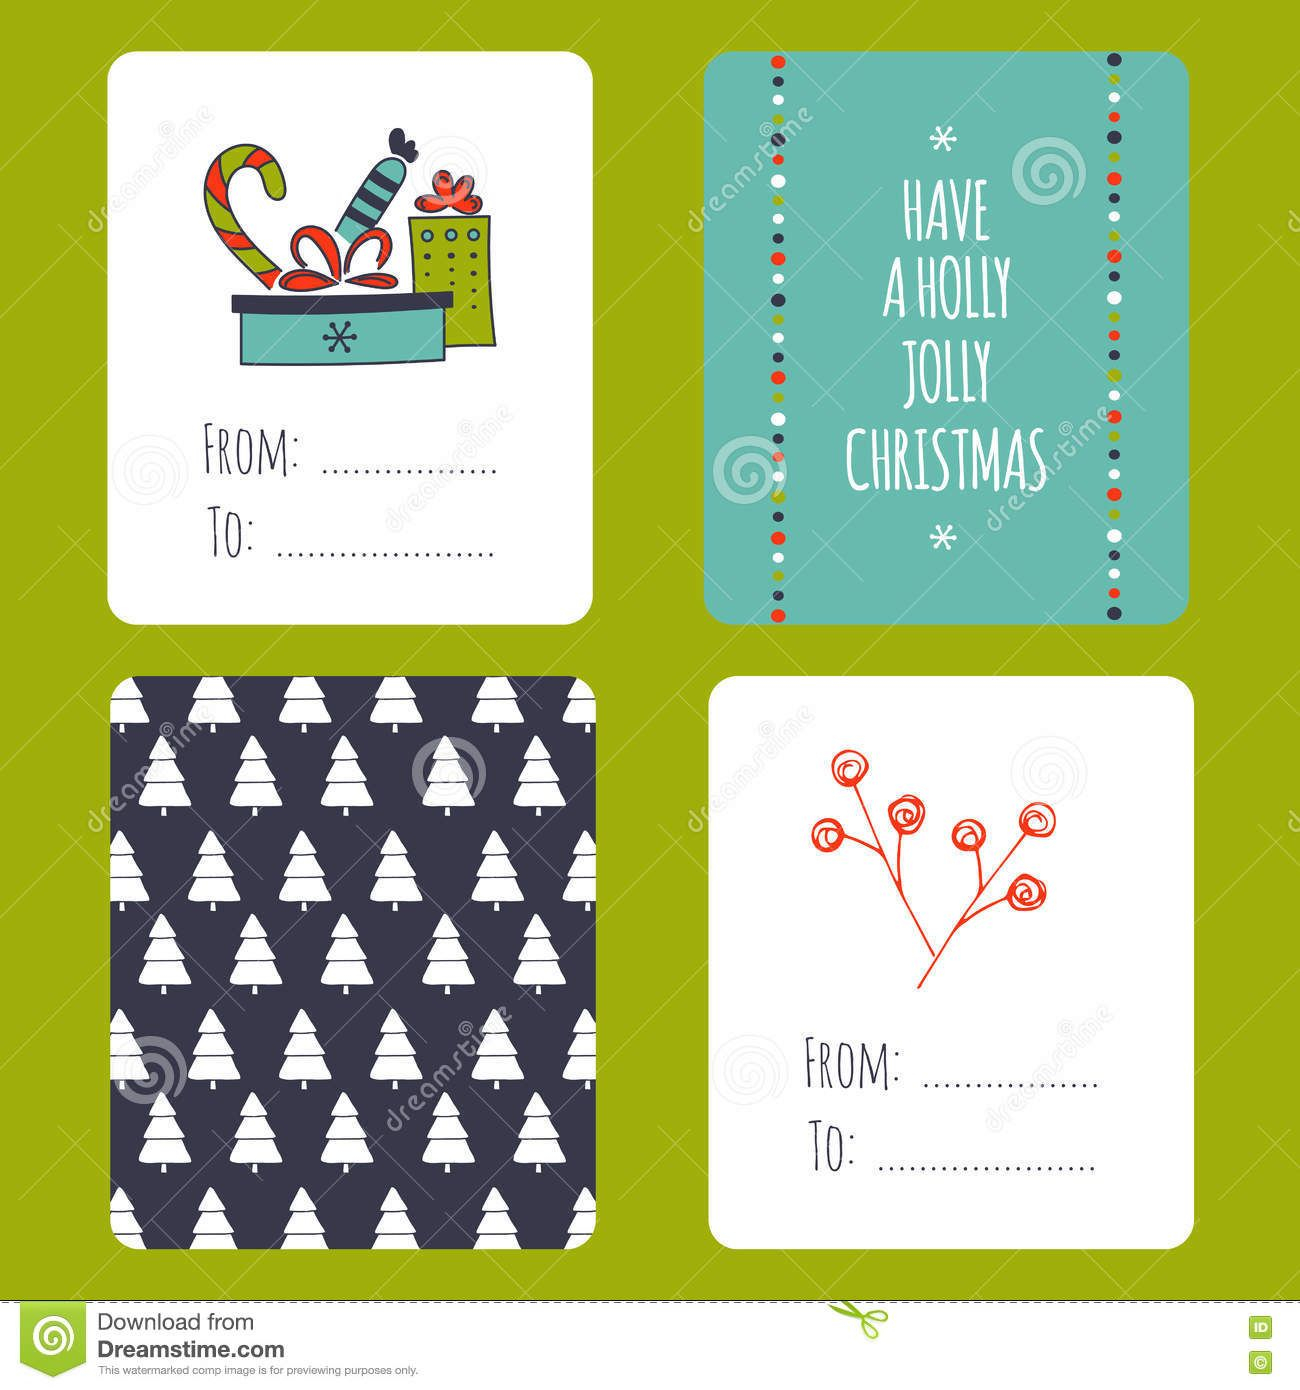 Christmas Set Of Cards Stock Vector Illustration Of Design Throughout Small Greeting Card Greeting Card Template Small Christmas Cards Christmas Card Template